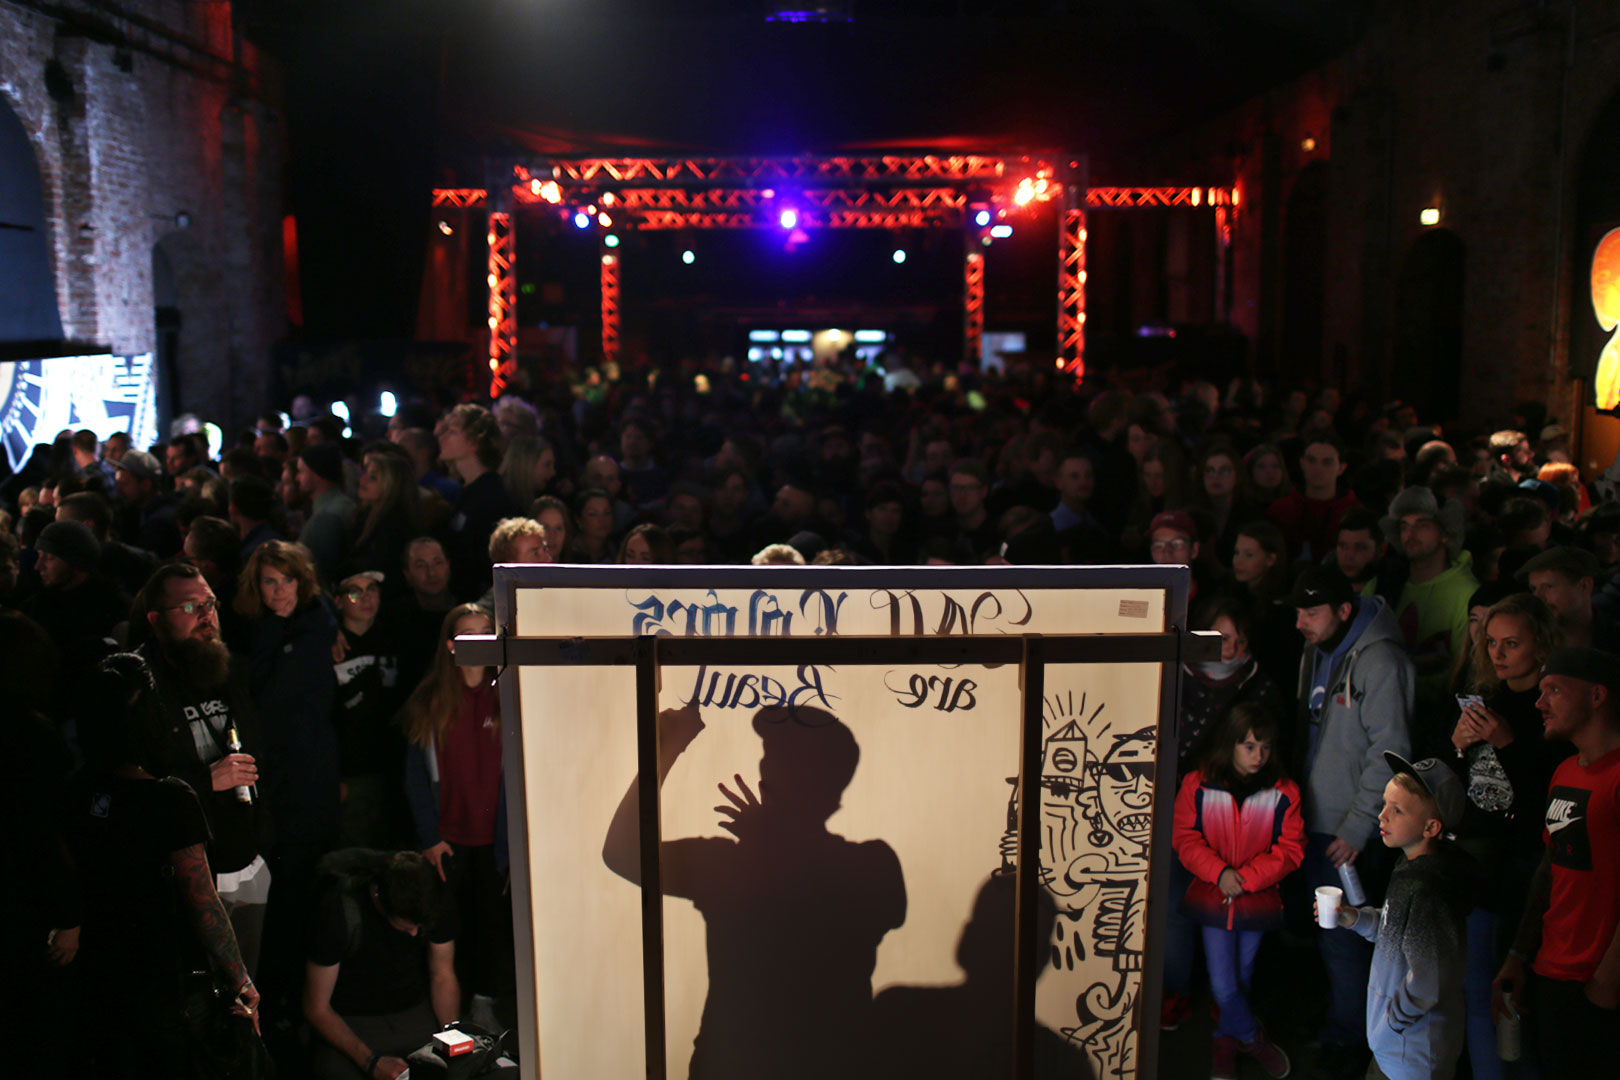 Das Paint Club Battle League Finale 2018 in Dresden